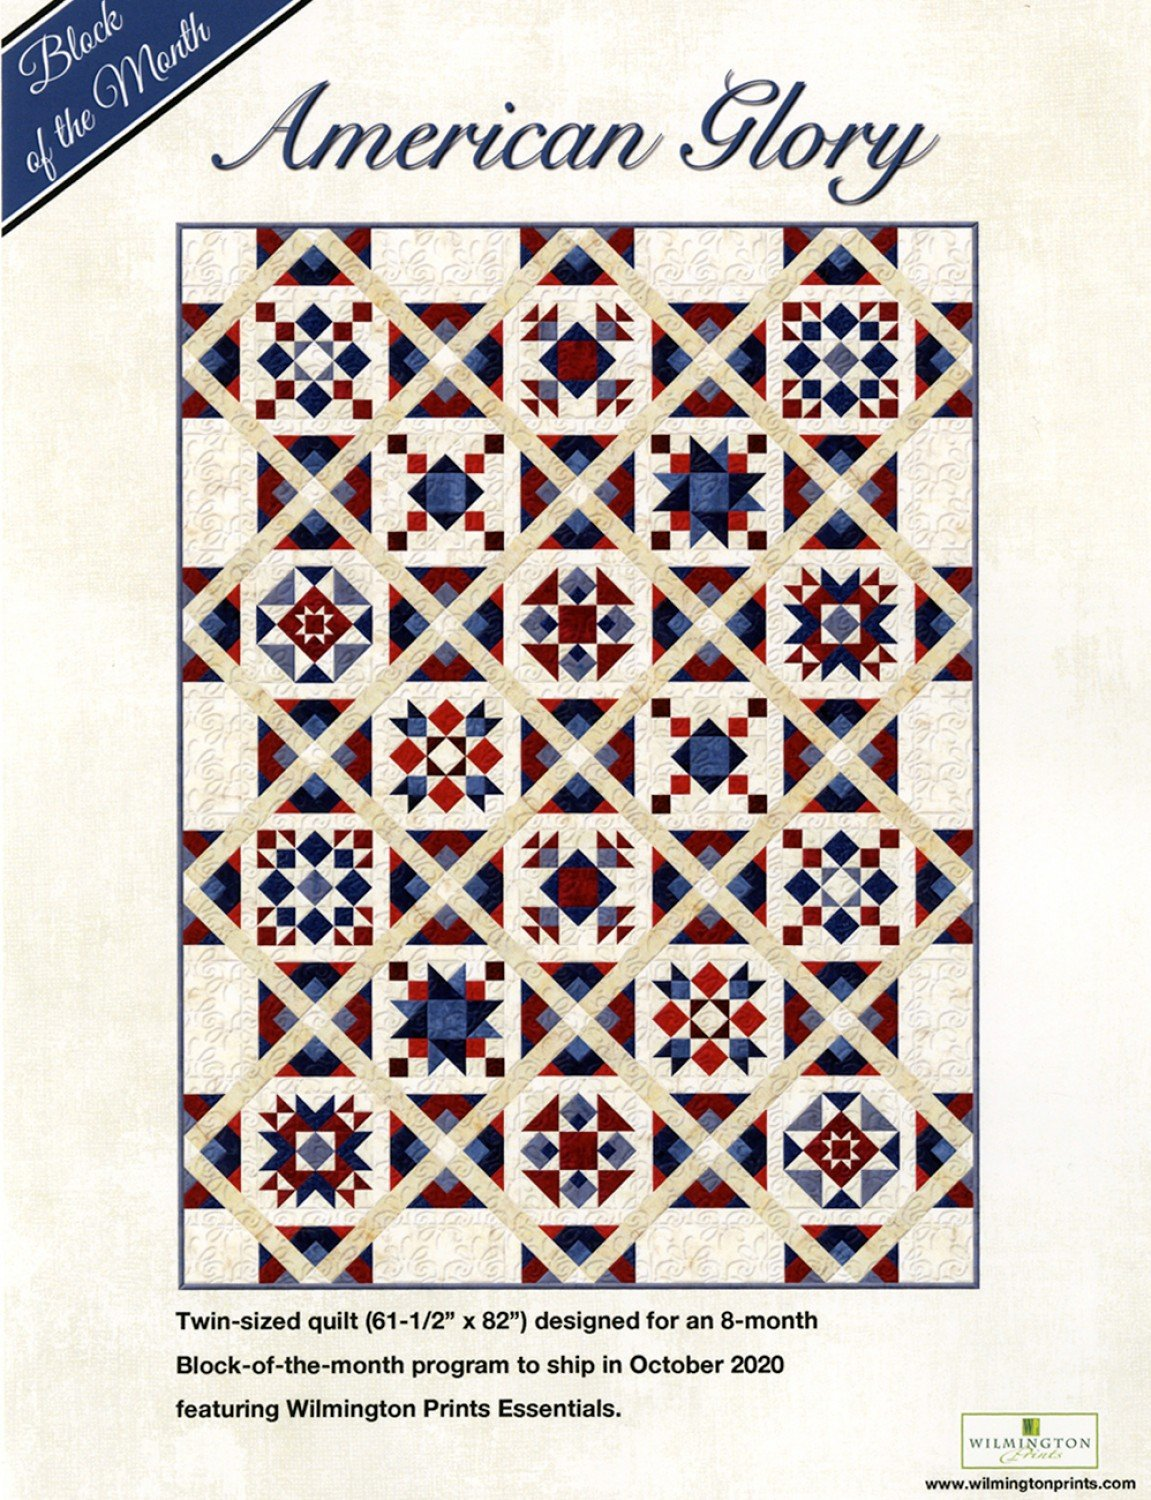 American Glory block of the month by Wilmington Prints